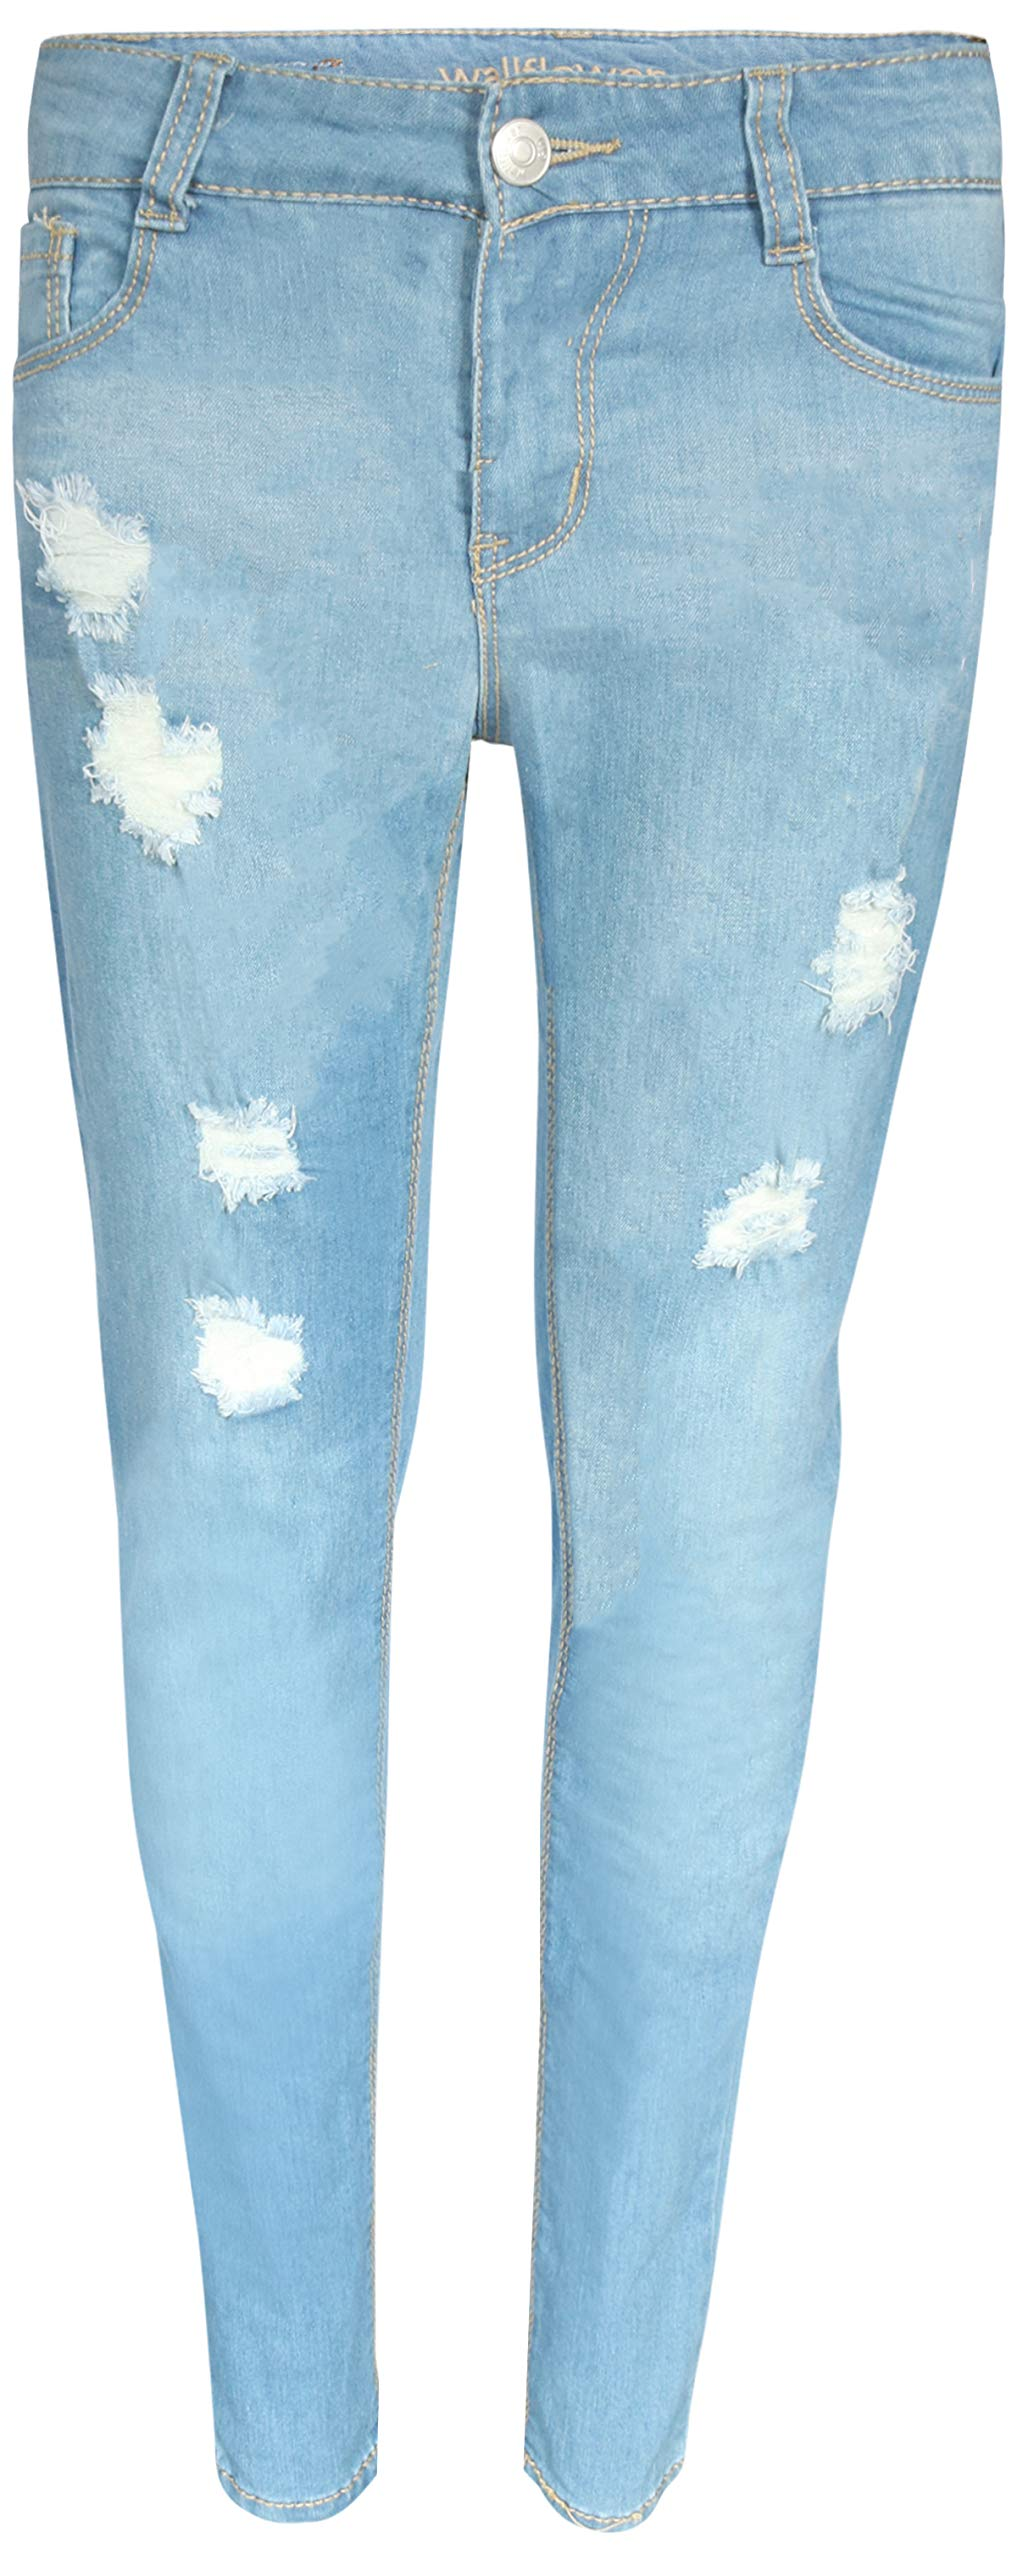 WallFlower Girl's Skinny Soft Stretch Jeans with Rips and Tears, Medium Light Wash 14'